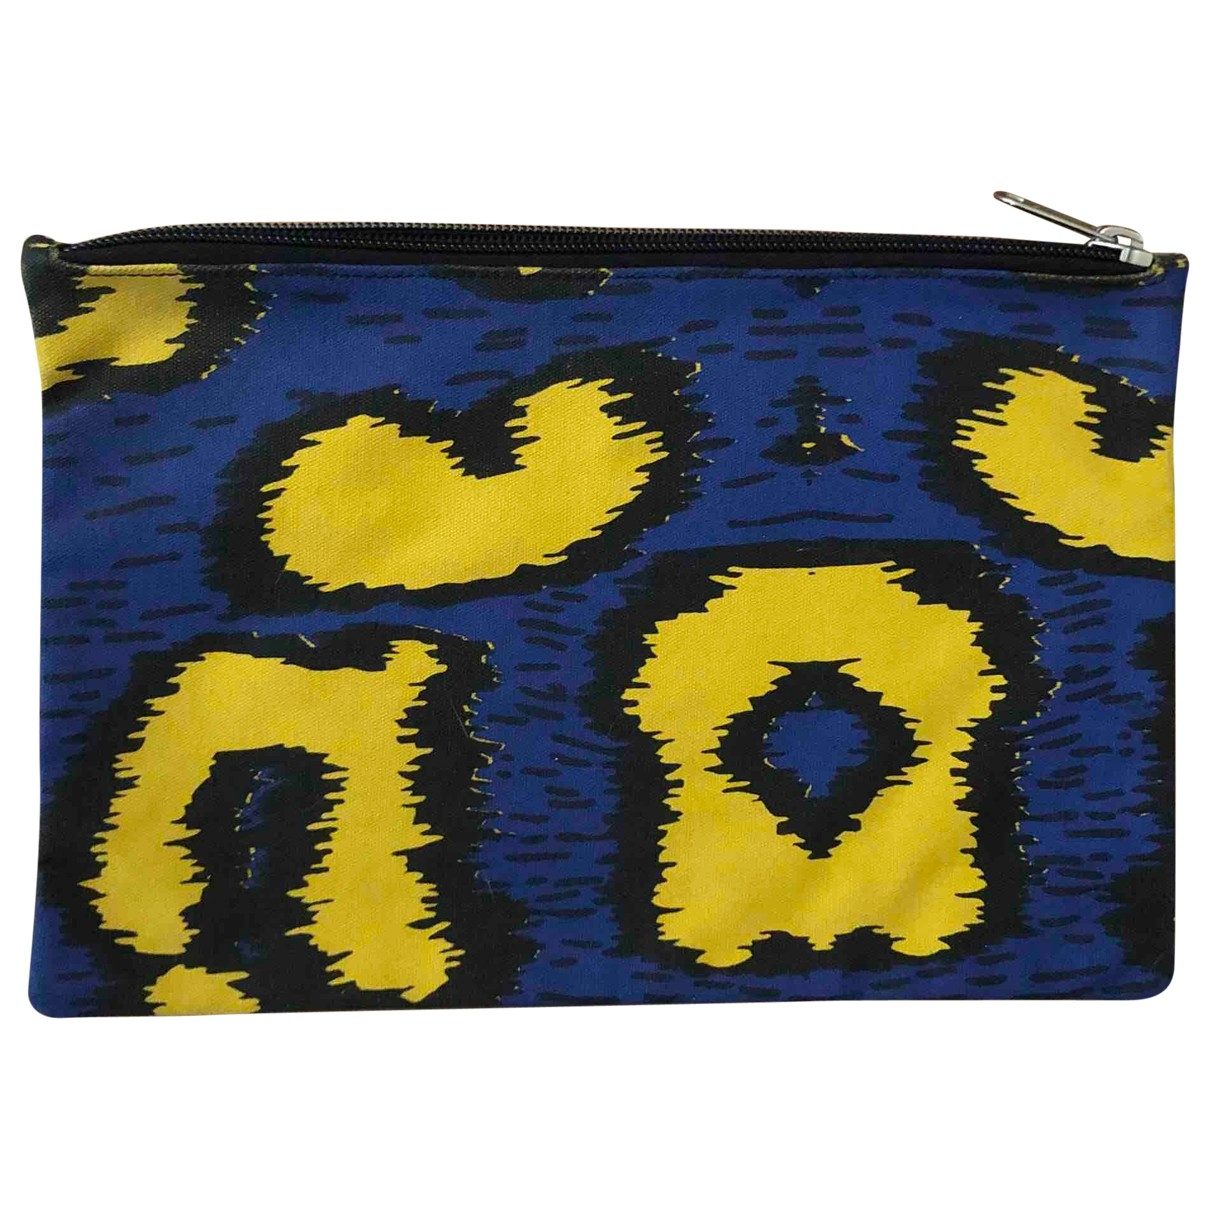 Vivienne Westwood Anglomania Clutch bag